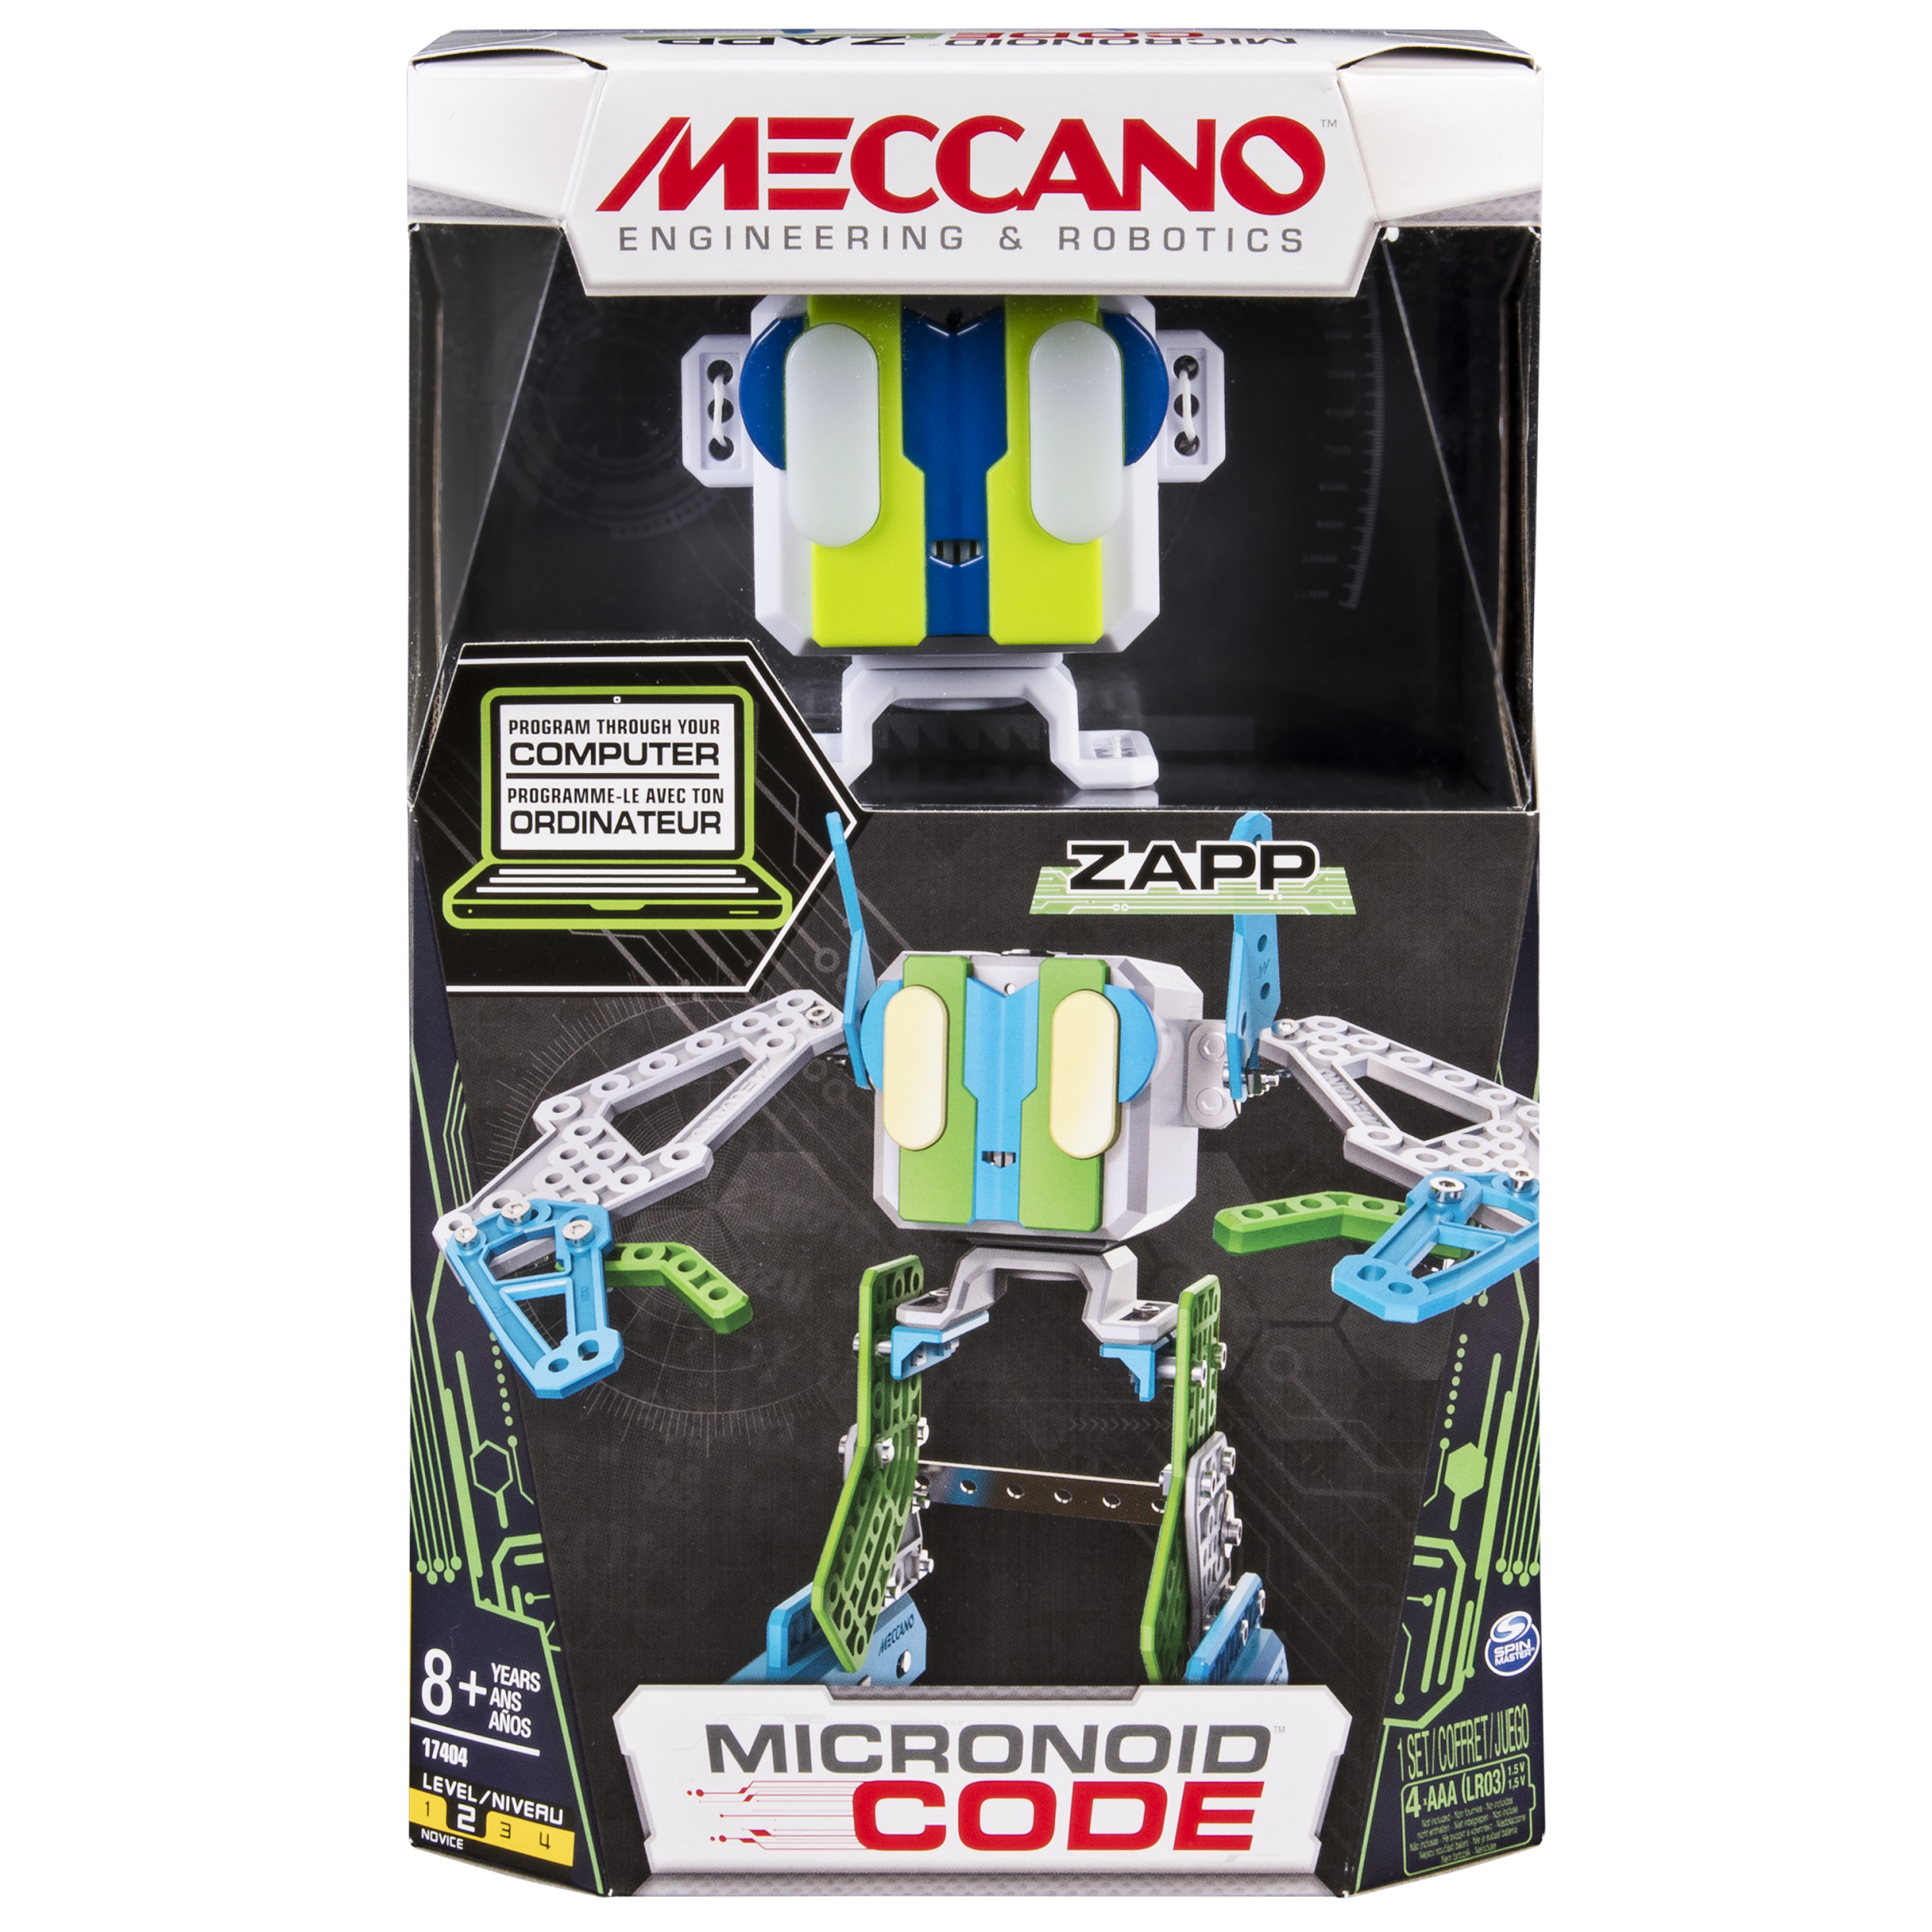 Meccano-Erector Micronoid Code Zapp Programmable Robot Building Kit by Spin Master Ltd